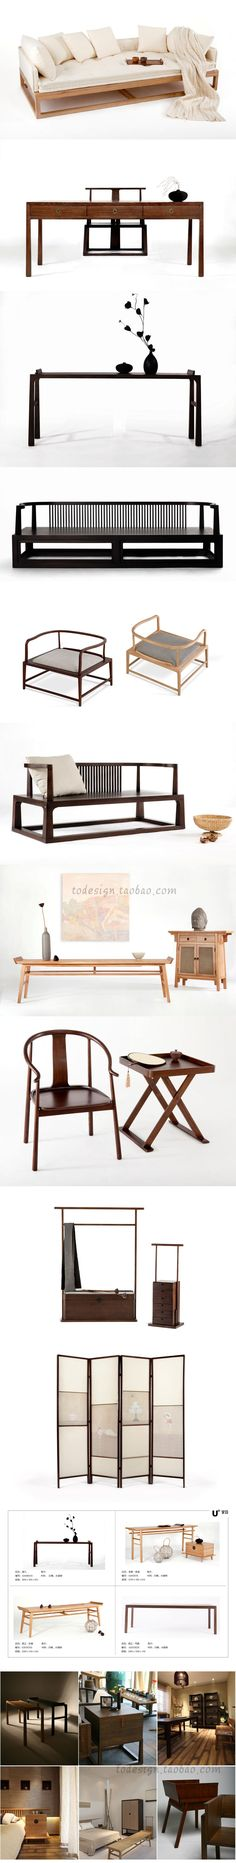 new chinese style Zen solid wood furniture / interior design soft decorat . new chinese style Zen solid wood furniture / interior design soft decorat . All Modern Furniture, Chinese Furniture, Oriental Furniture, Solid Wood Furniture, Furniture Styles, Furniture Design, Chinese Interior, Asian Interior, Modern Interior